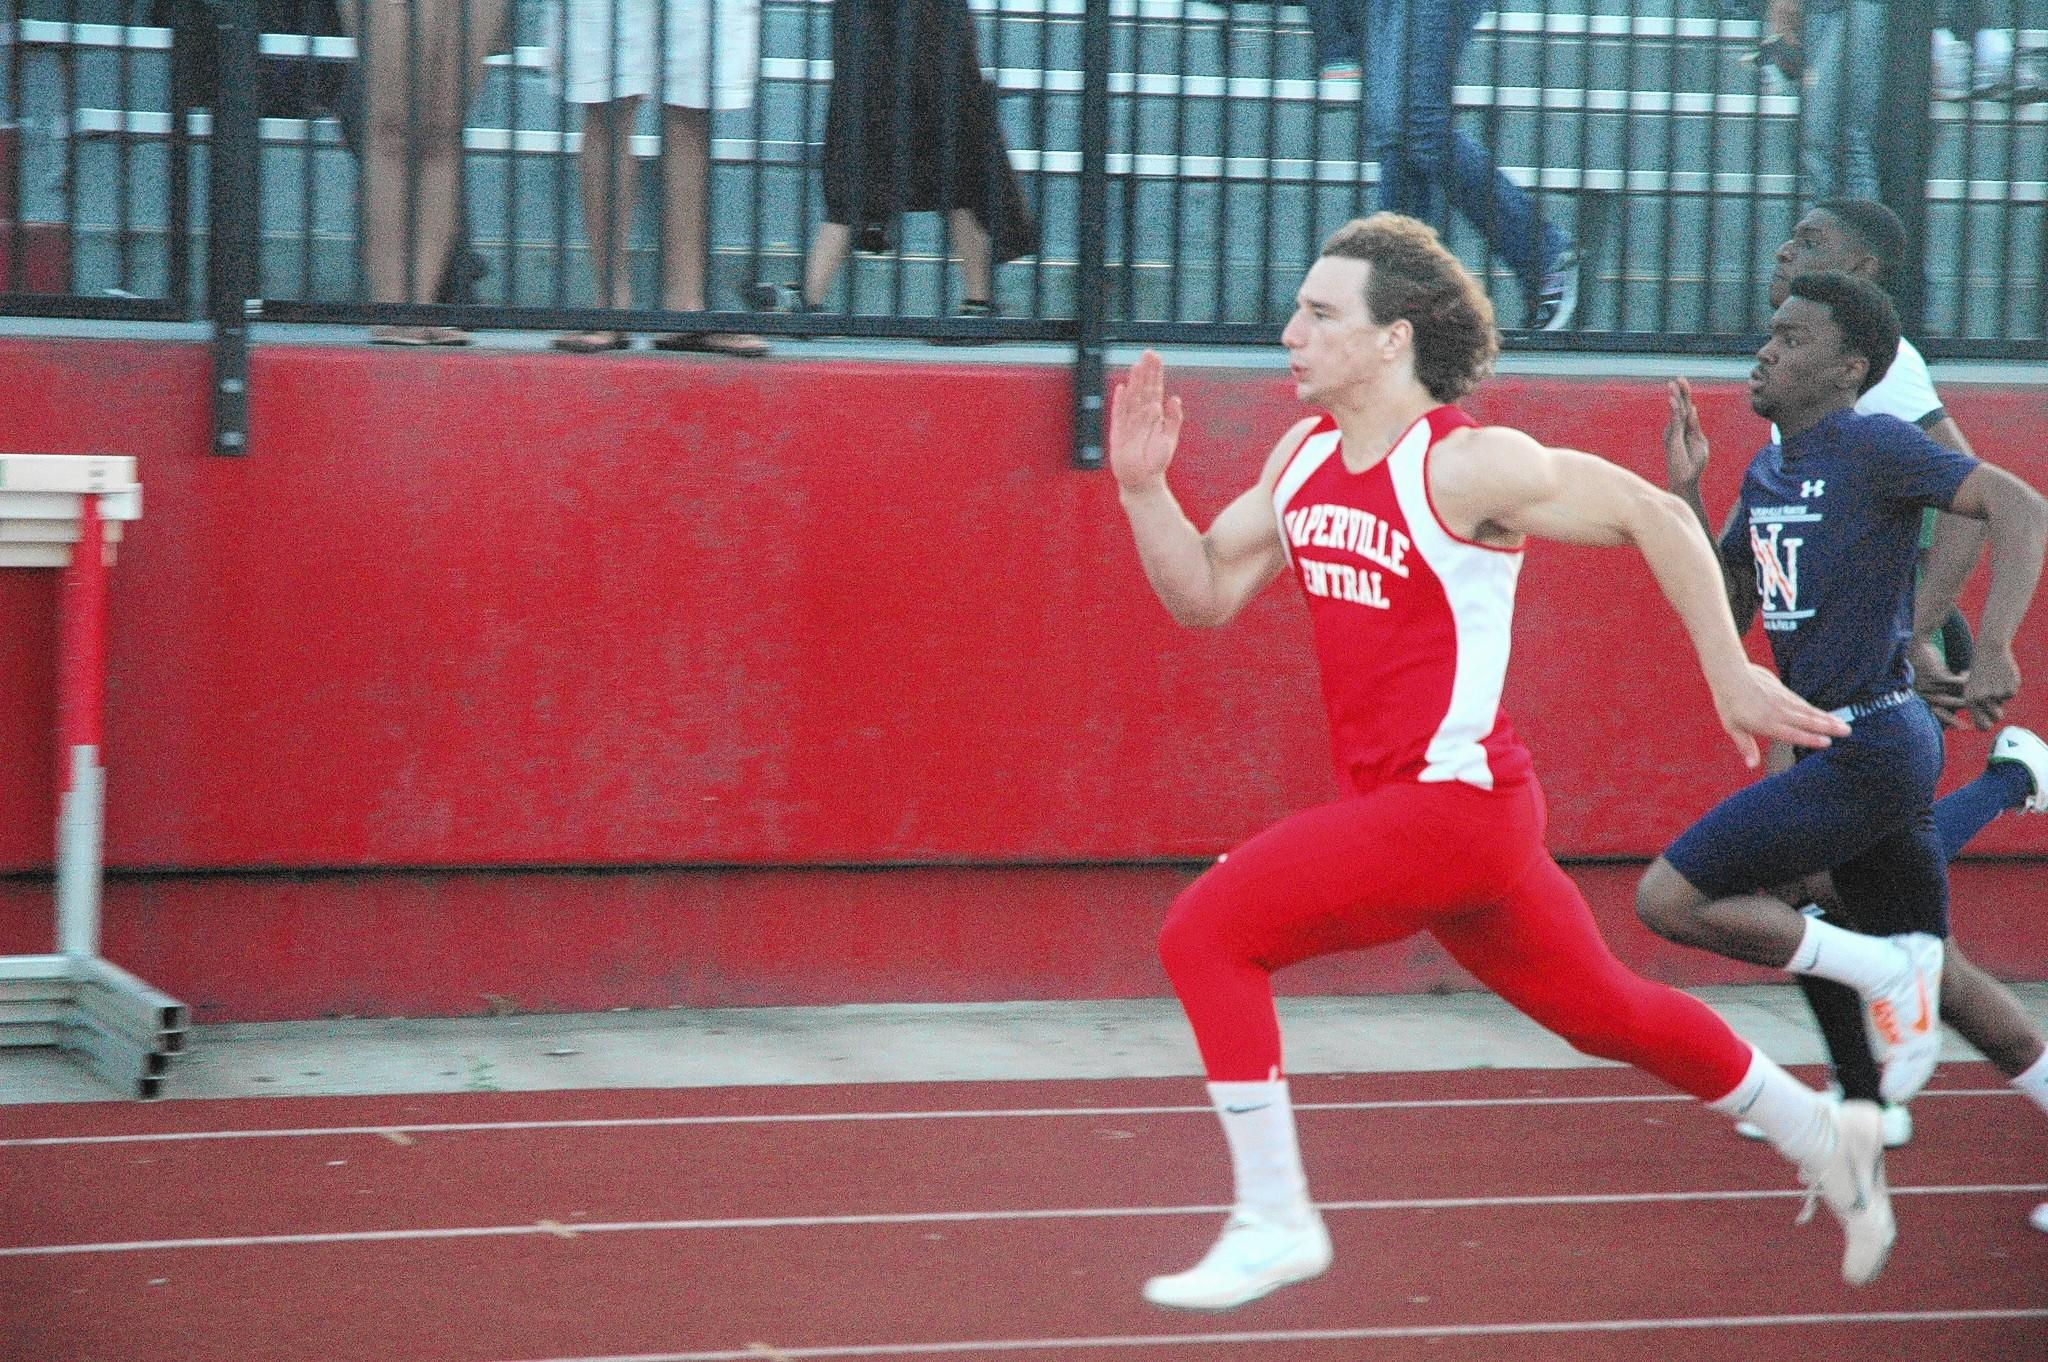 Naperville Central senior Ben Andreas competes in the 100-meter run at the DuPage County meet at Naperville Central on Friday night. He finished sixth in the 100 meters and won the triple jump for the Redhawks.